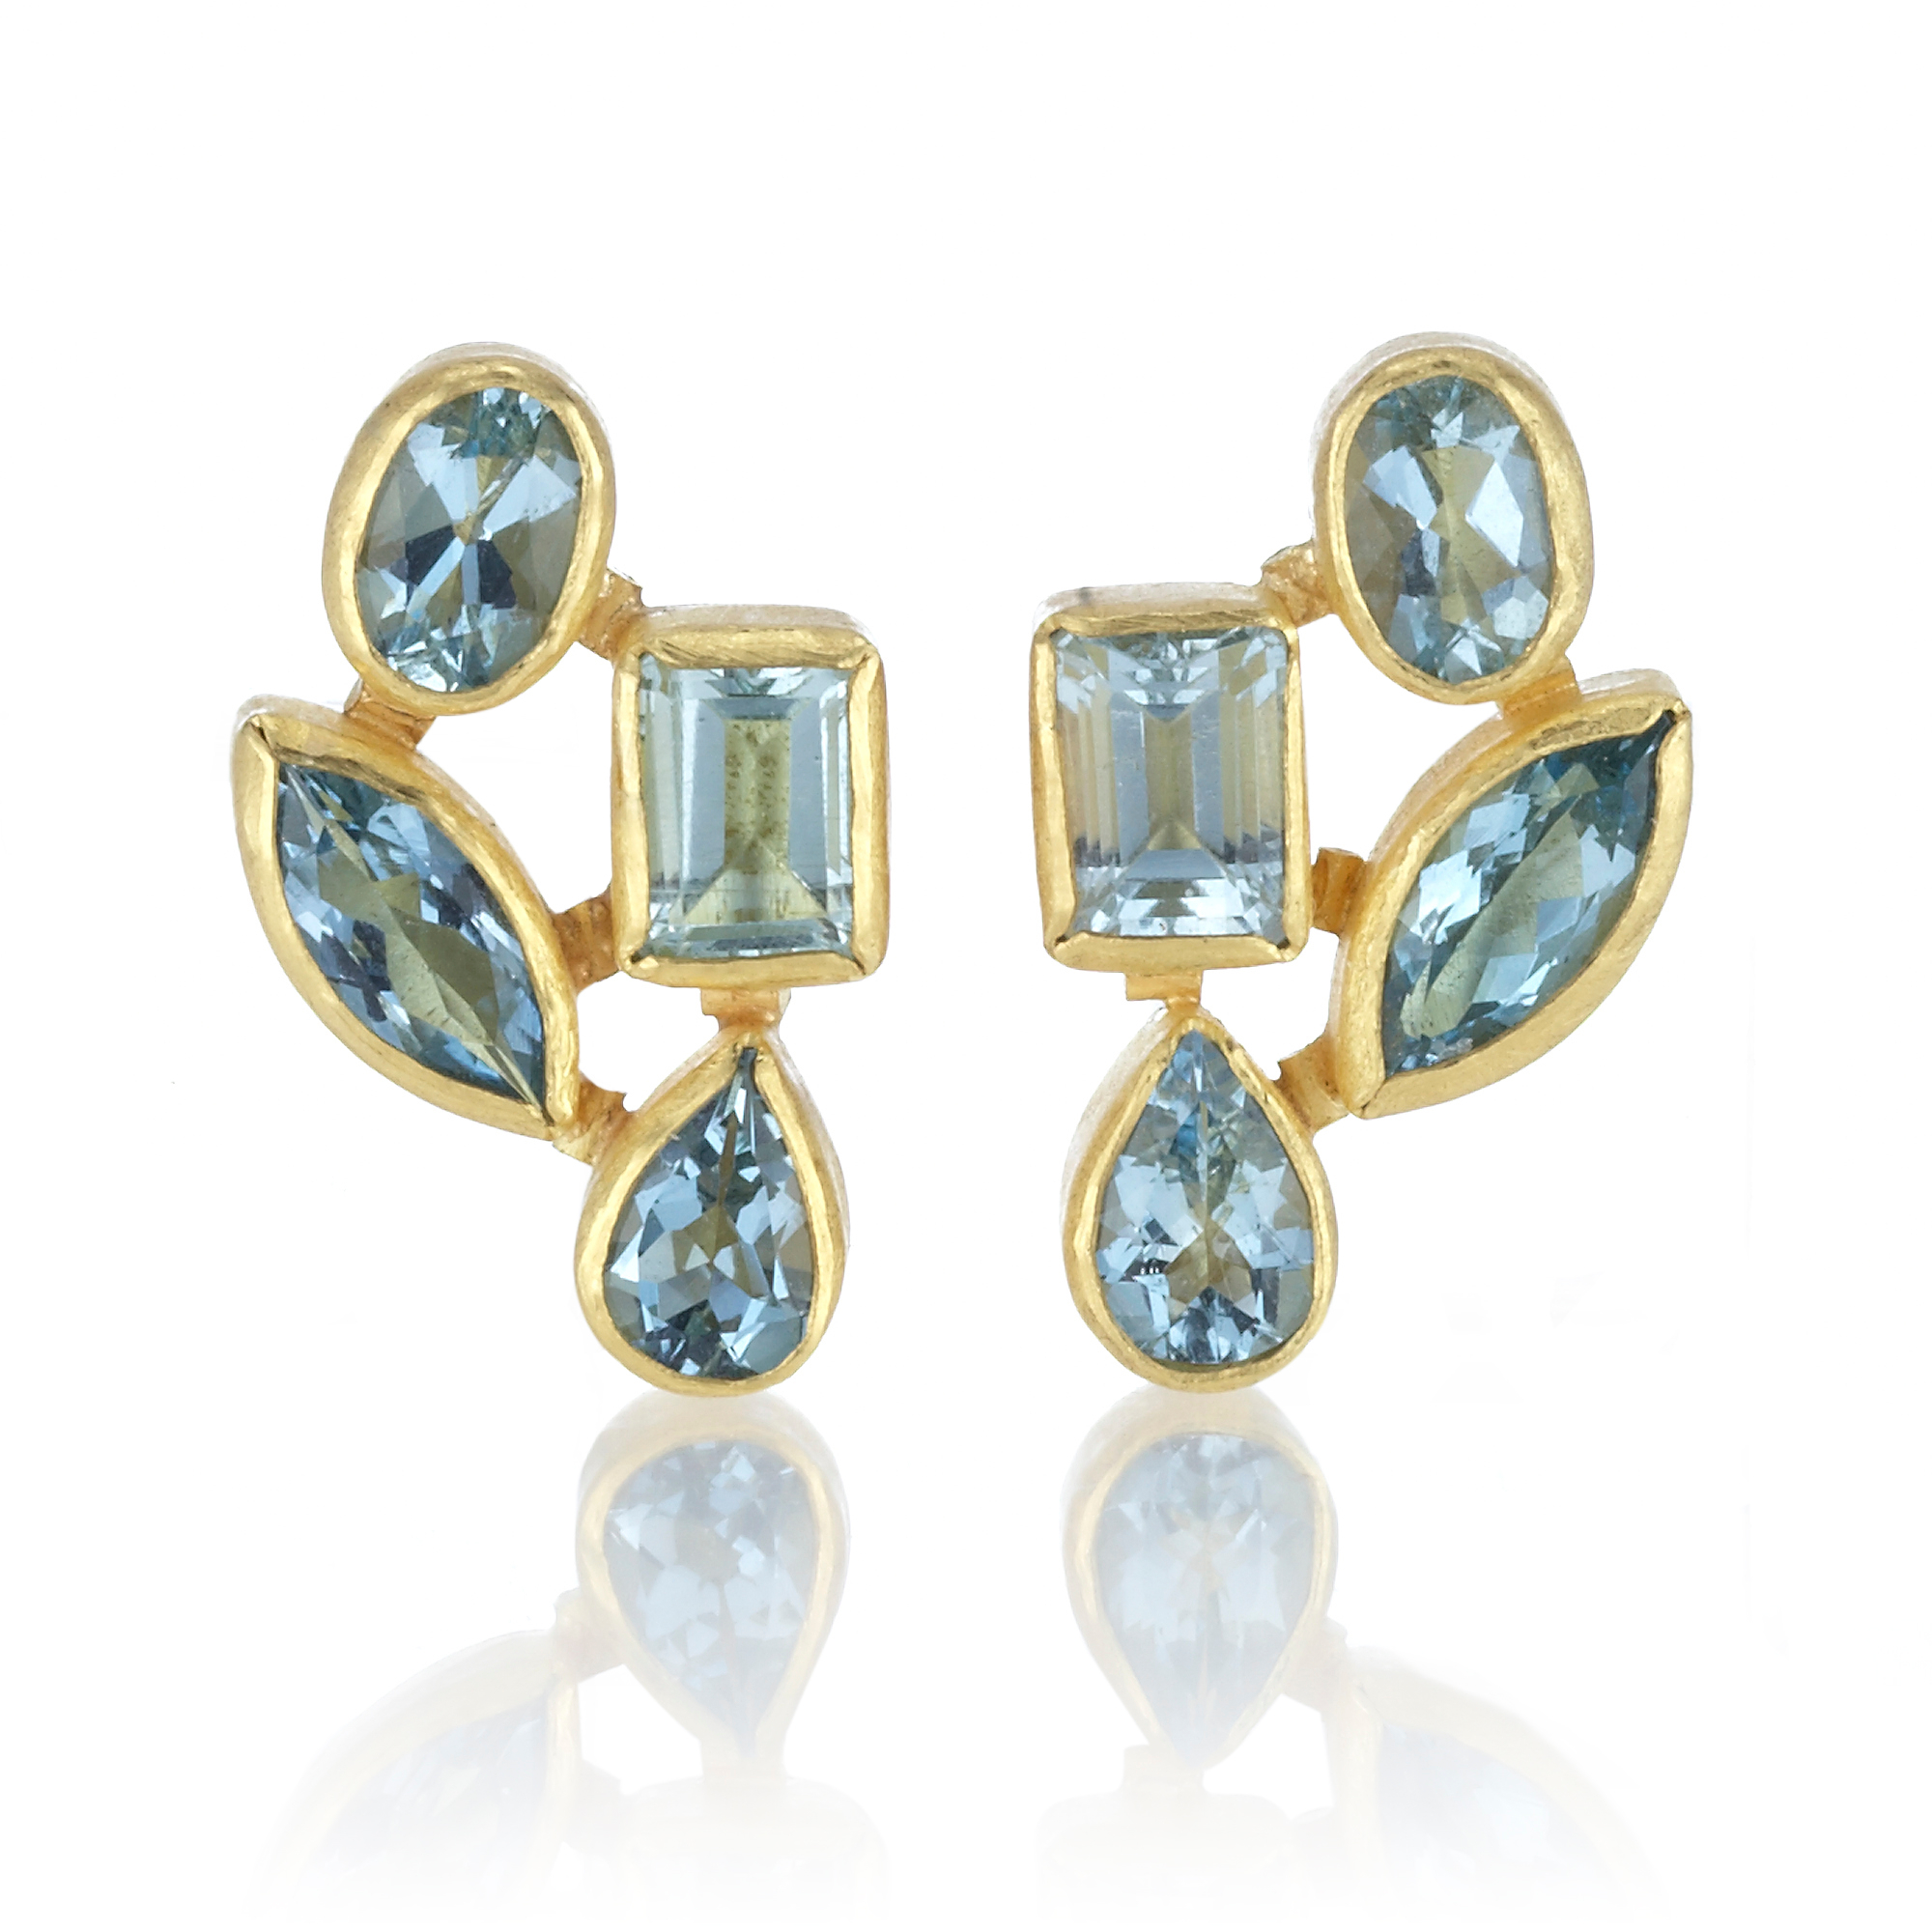 Petra Class Faceted Aquamarine Cluster Earrings